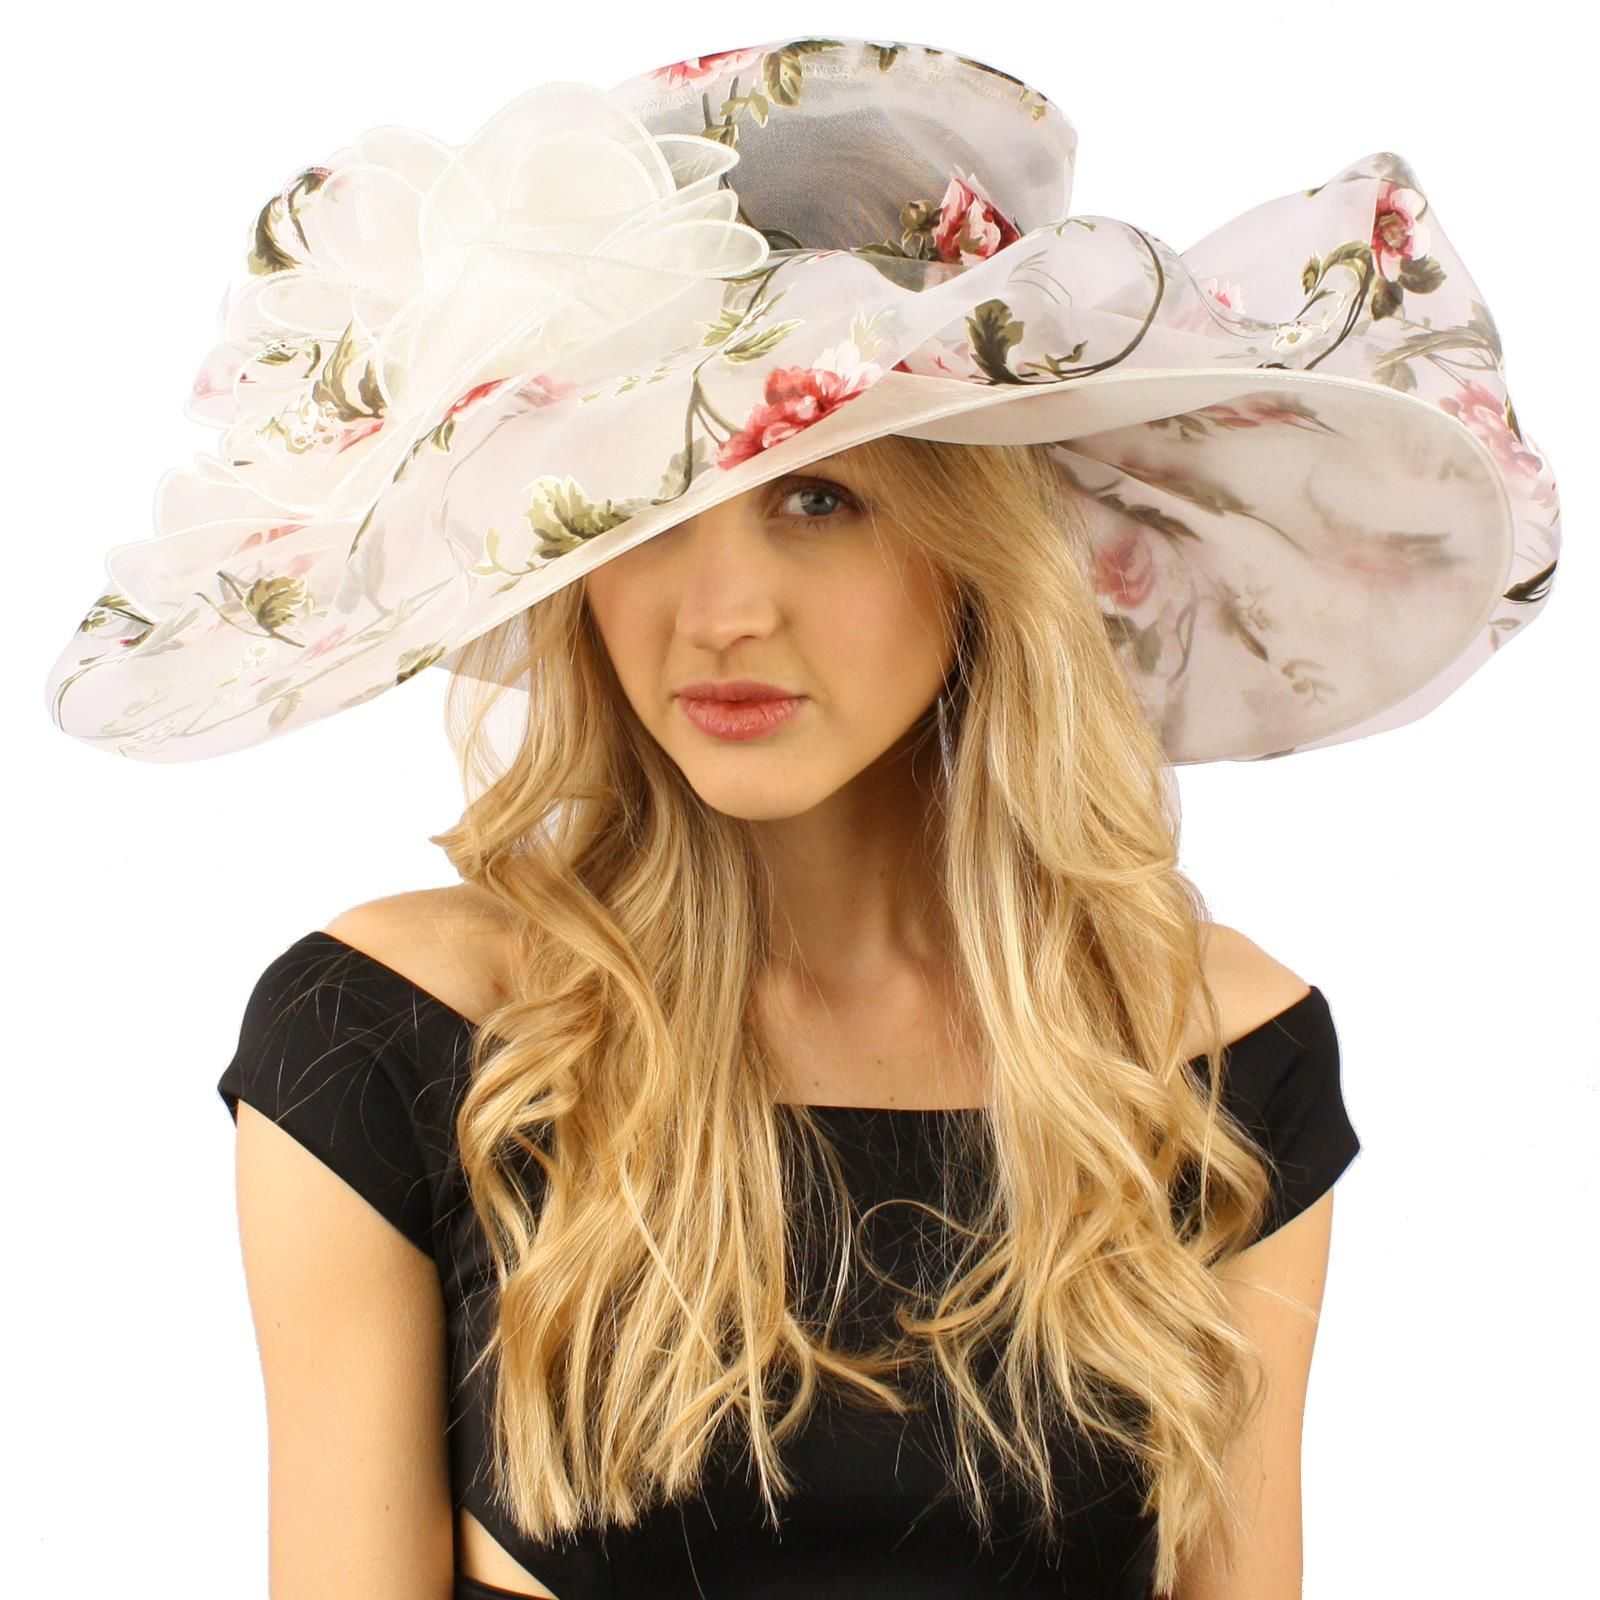 039937e5fe8 Innocent Victorian Flower Print Overlay Kentucky Derby Floppy Brim 8 ...